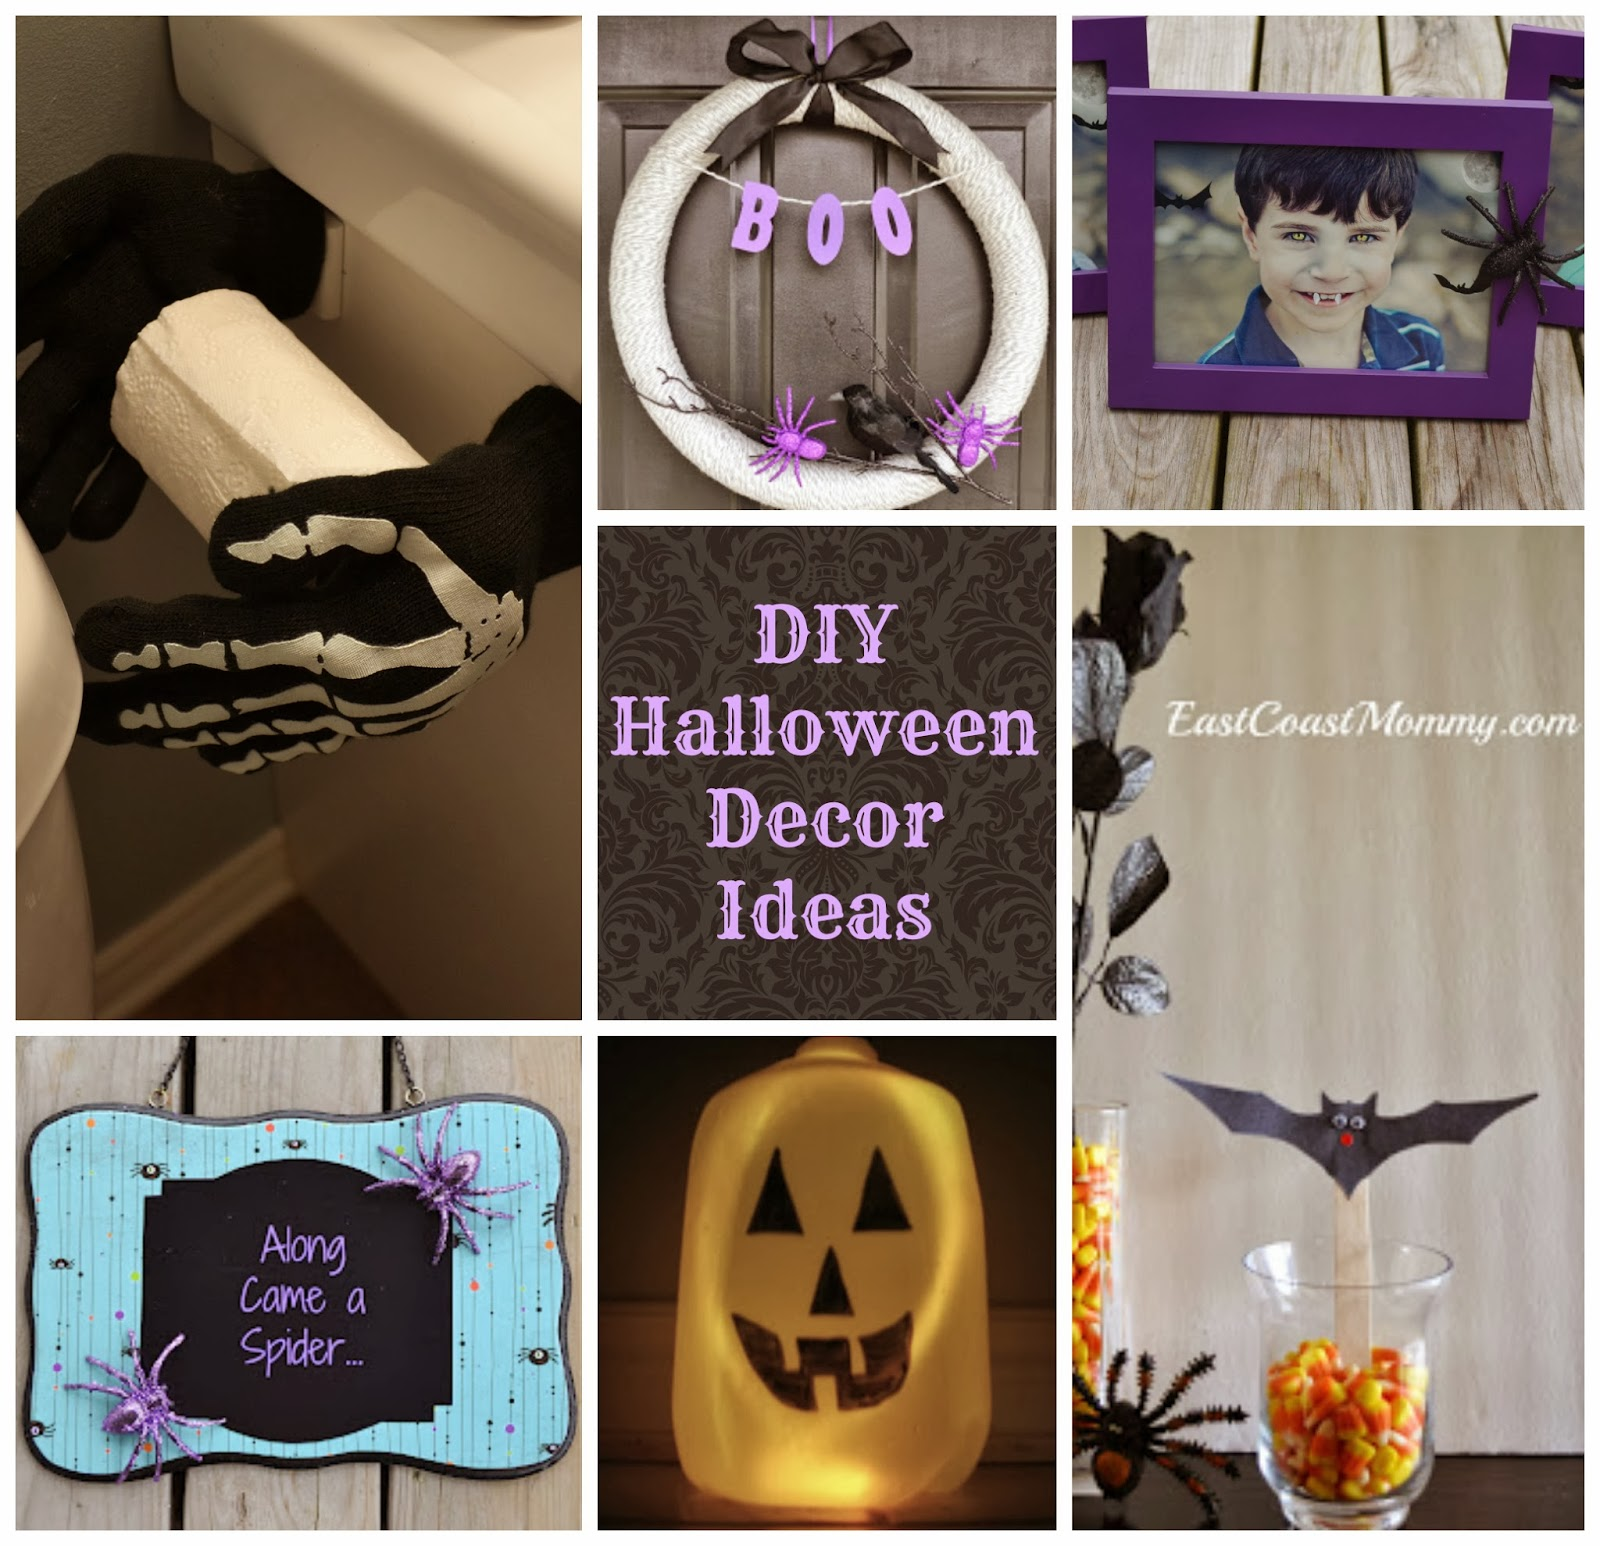 east coast mommy 7 fantastic diy halloween decor ideas. Black Bedroom Furniture Sets. Home Design Ideas